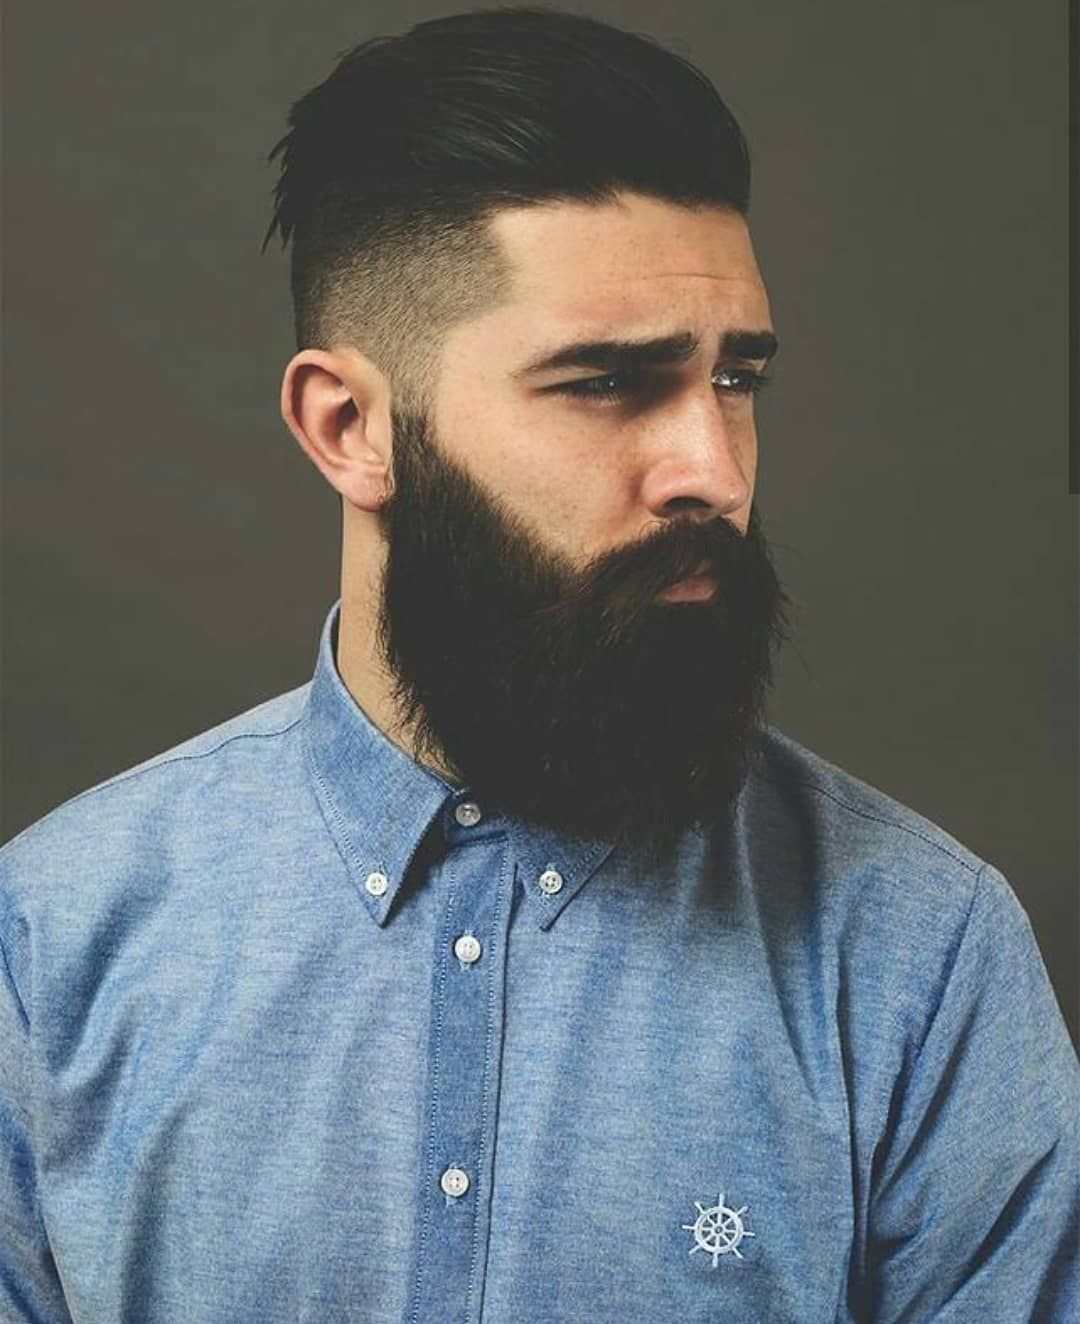 Face Look Breads And Haircut Beard Styles For Men Beard Hairstyle Beard No Mustache